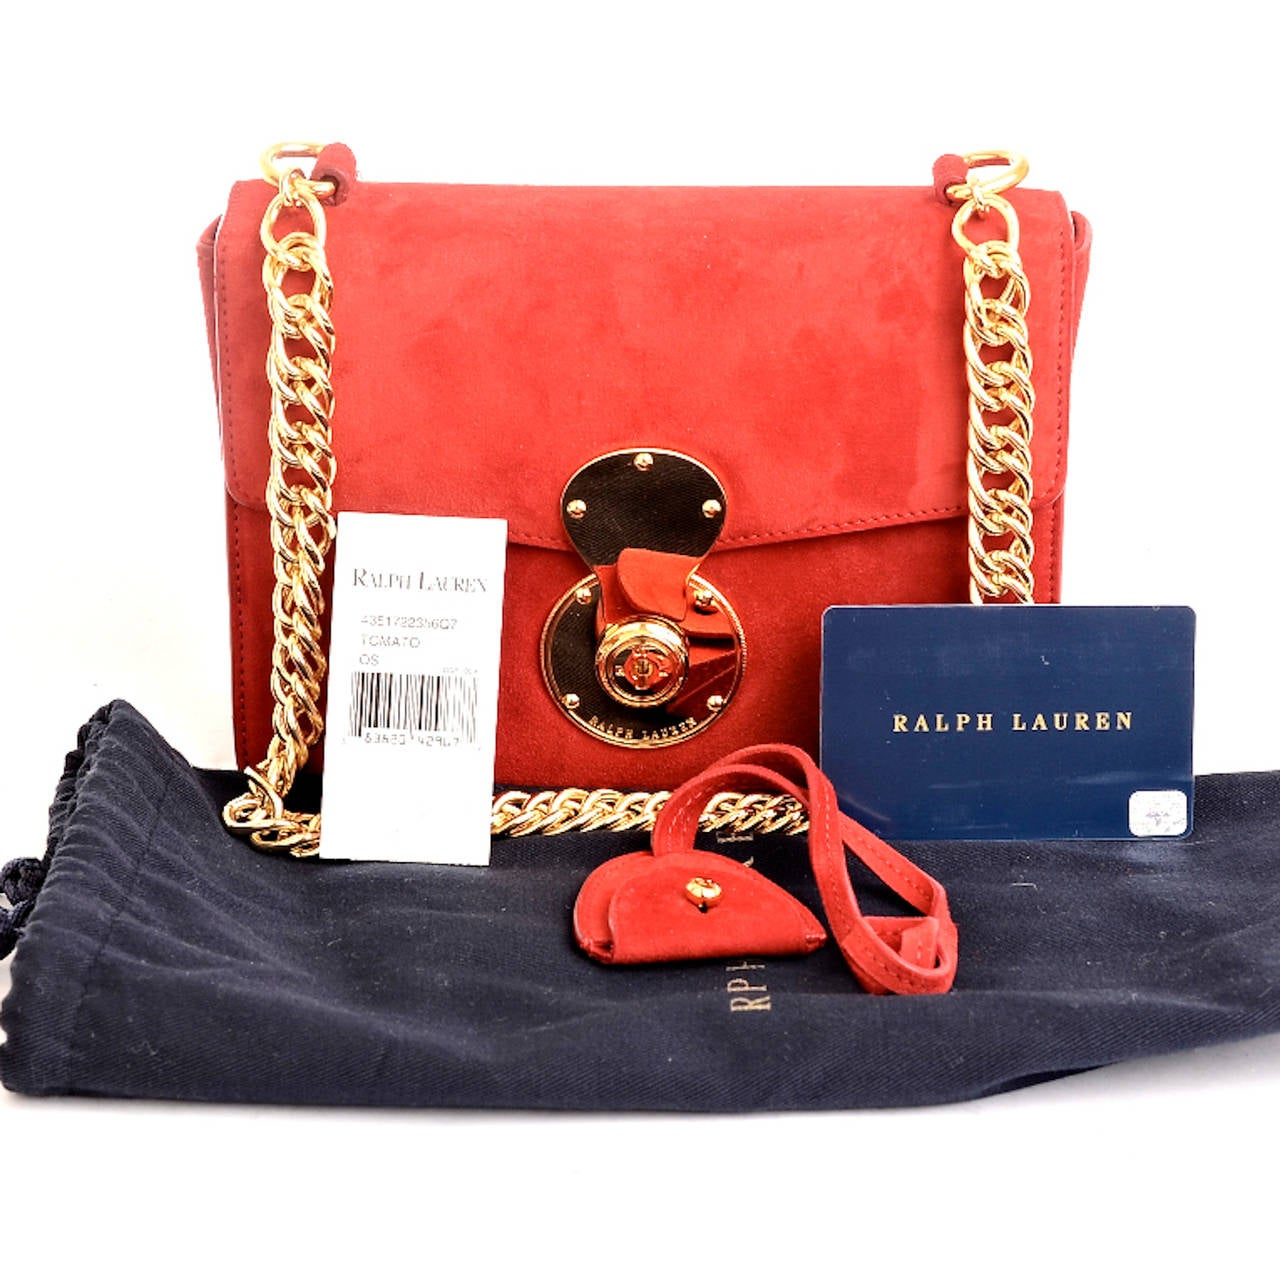 Ralph Lauren Red Suede Ricky Chain Bag For Sale 5